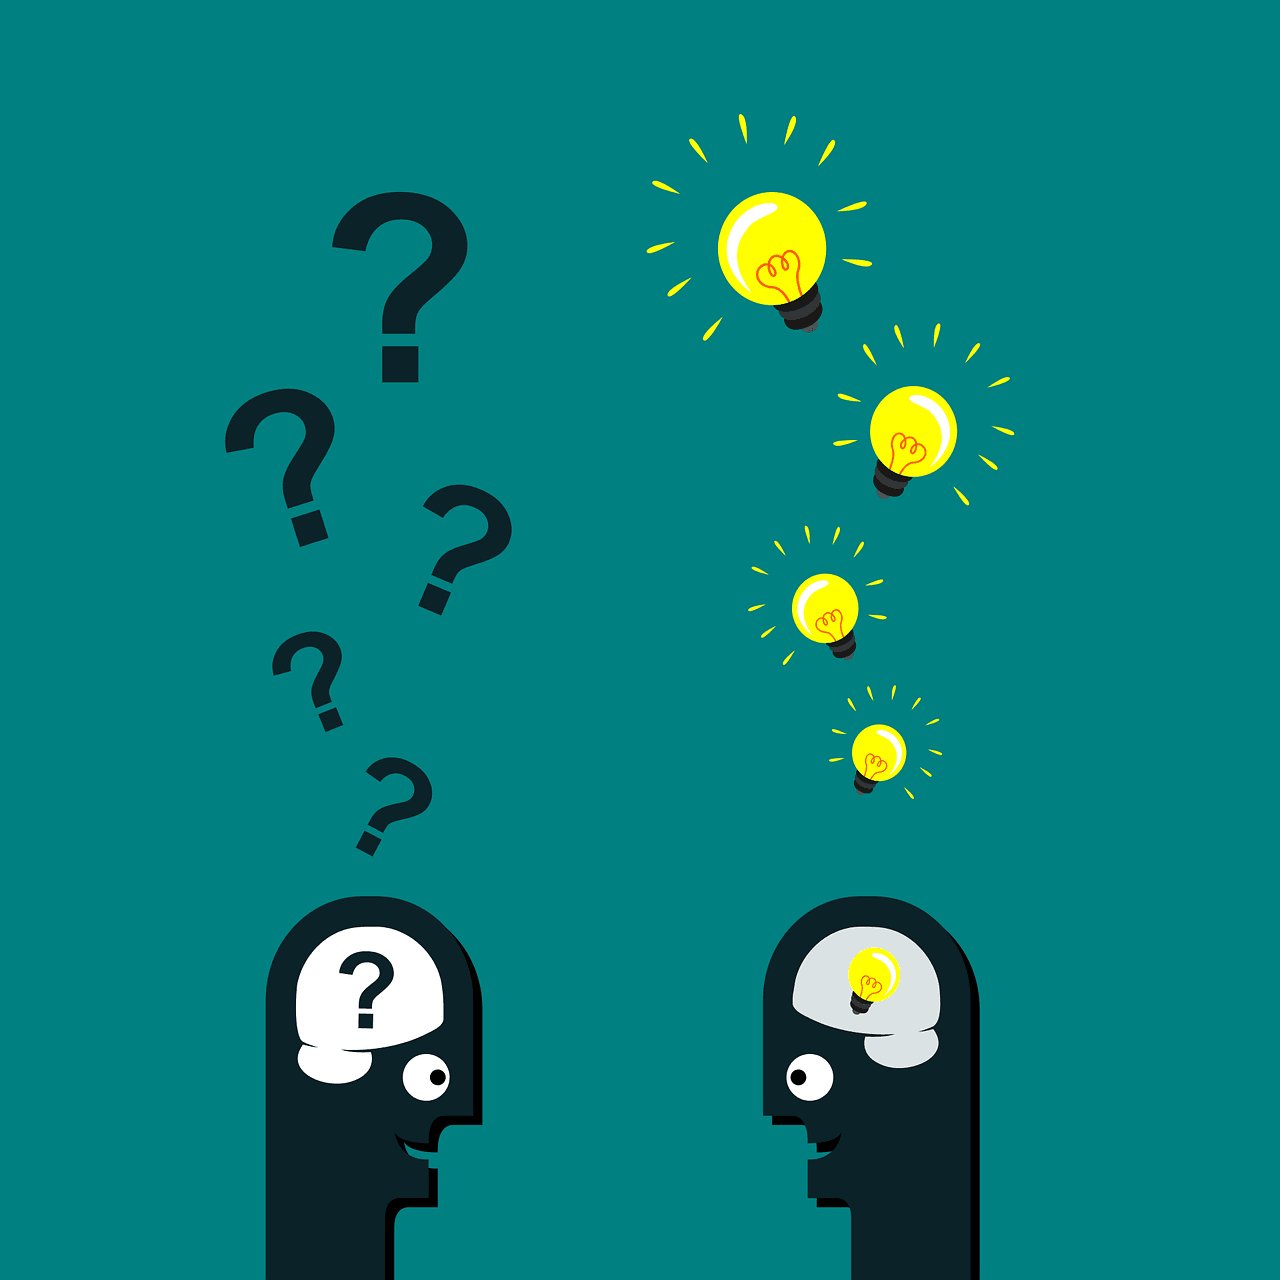 green background with 2 black stylized humans one with a question mark the other with a lightbulb